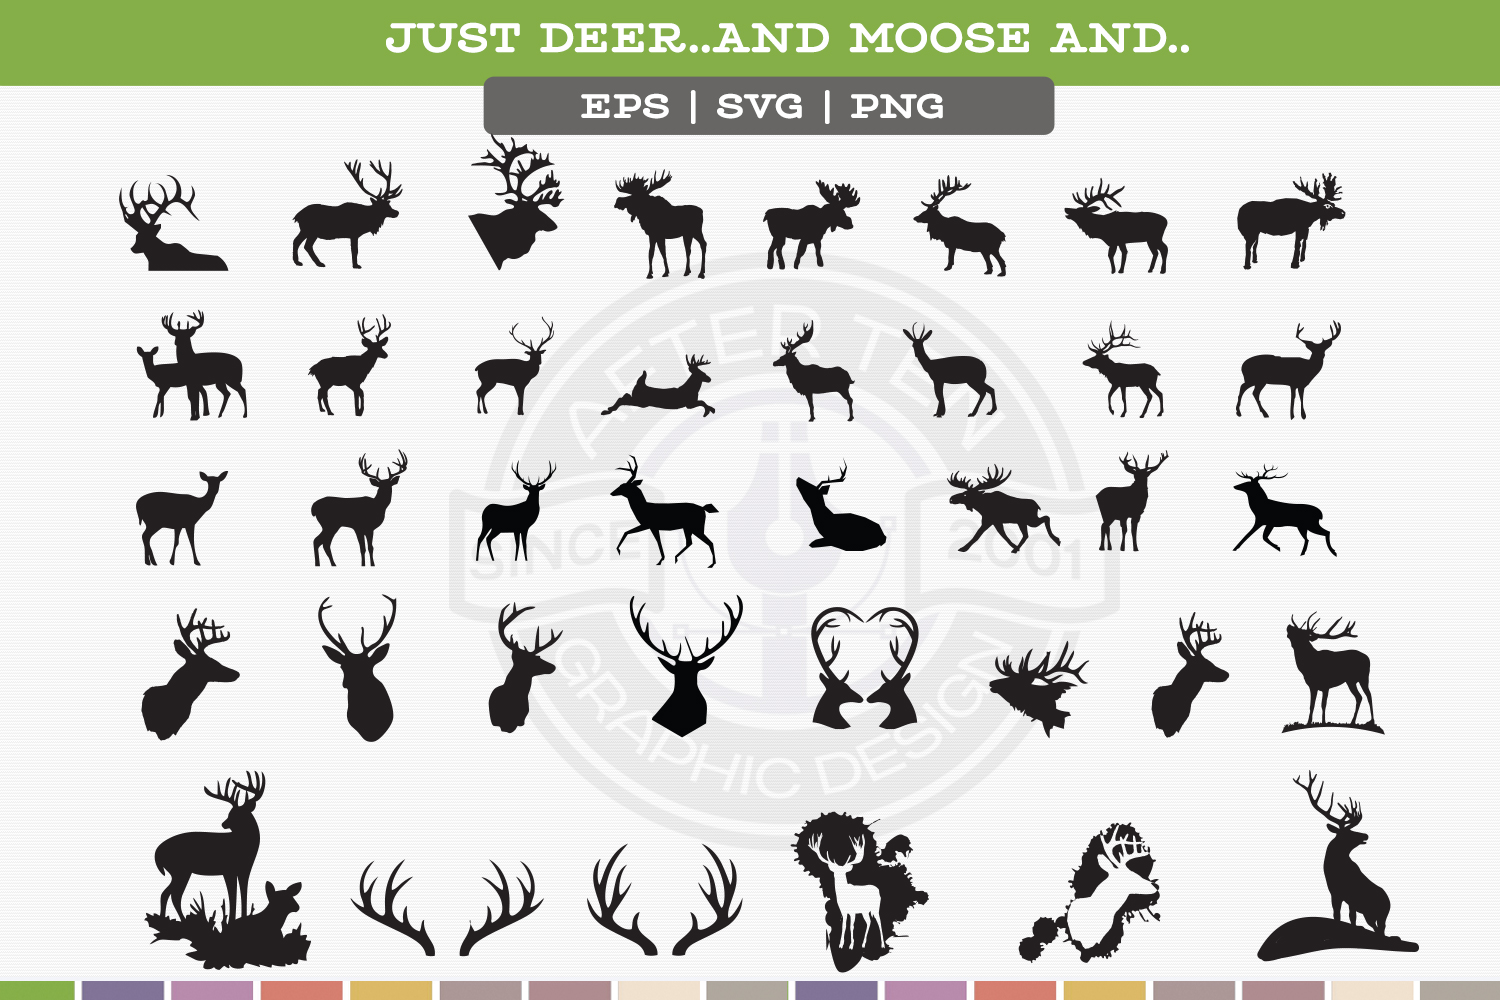 Just Deer and.. example image 2